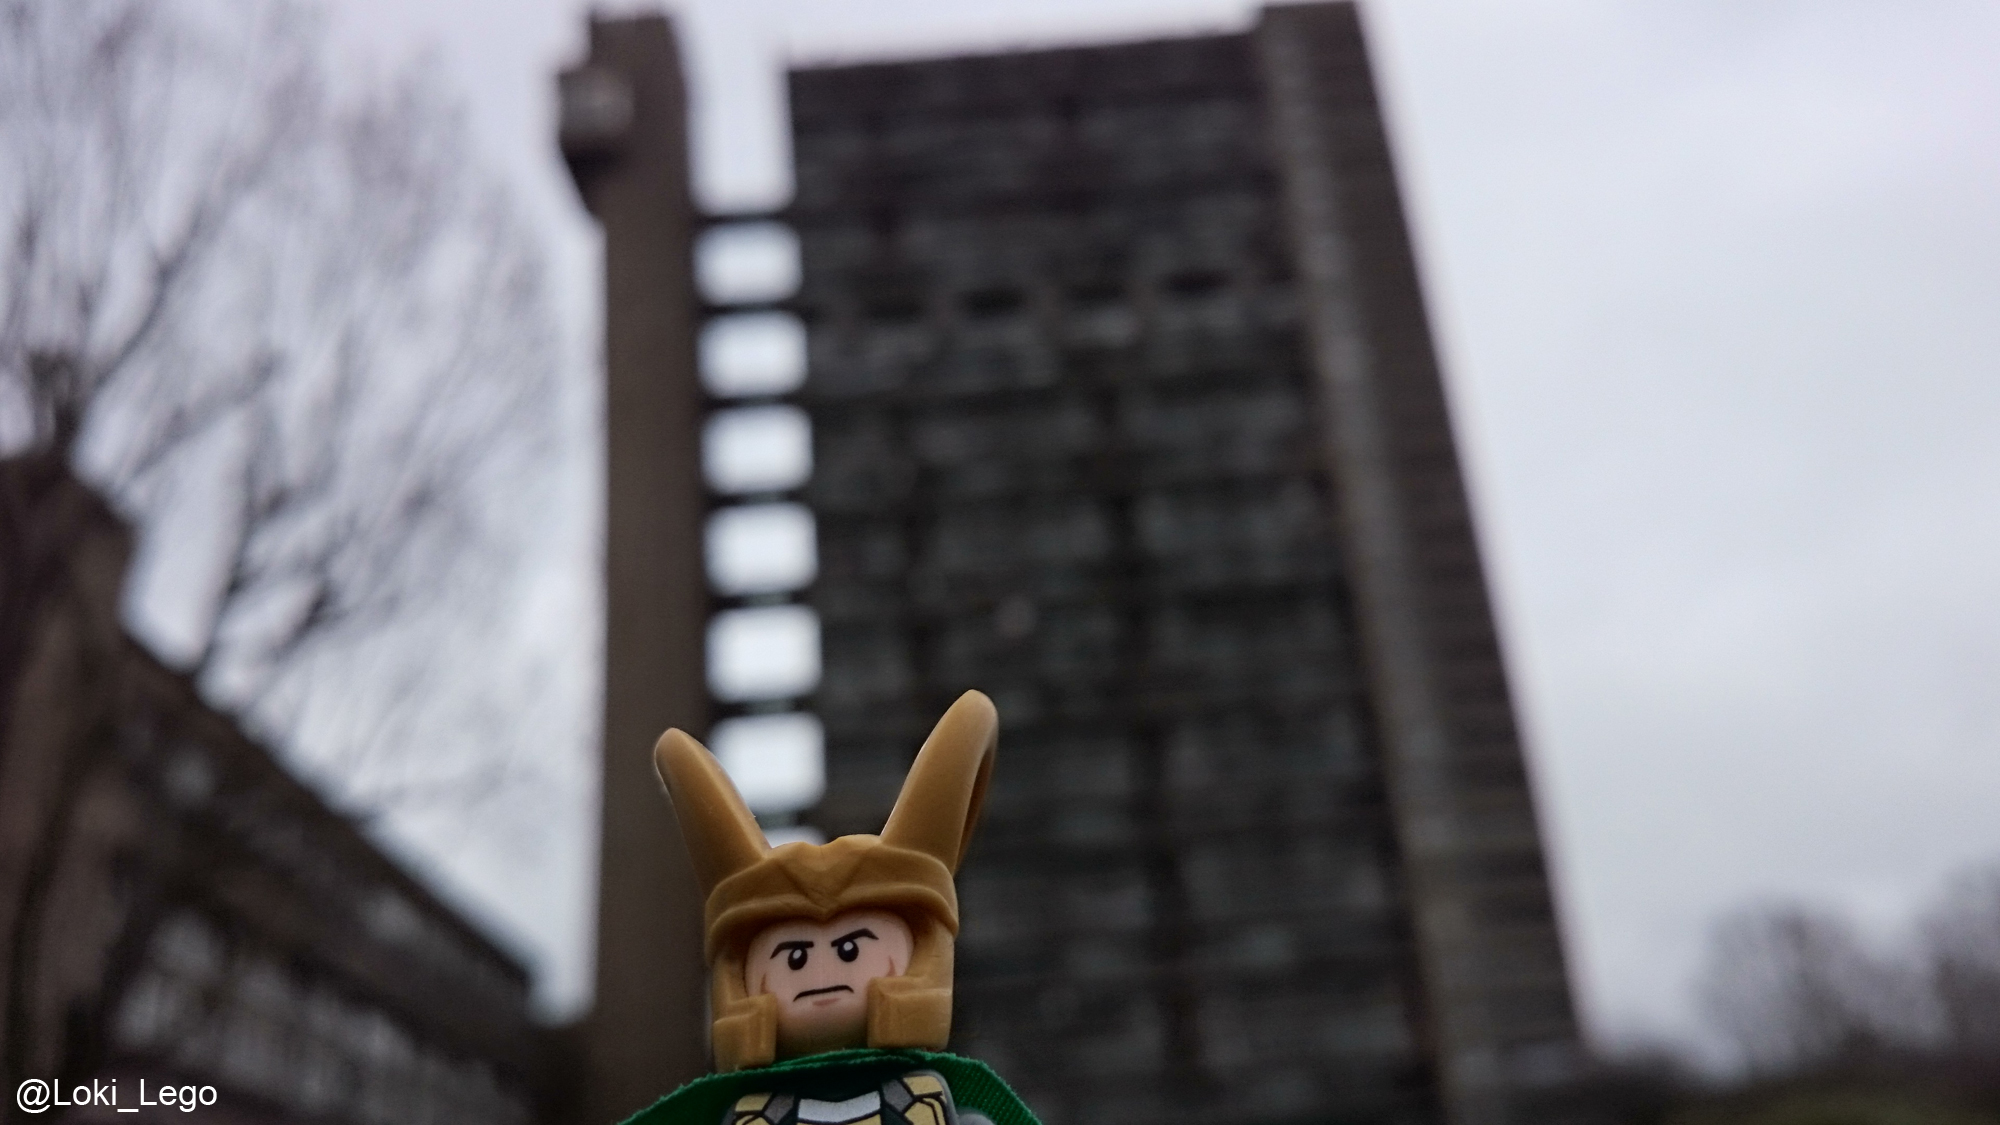 trellick-tower-ll-(2)